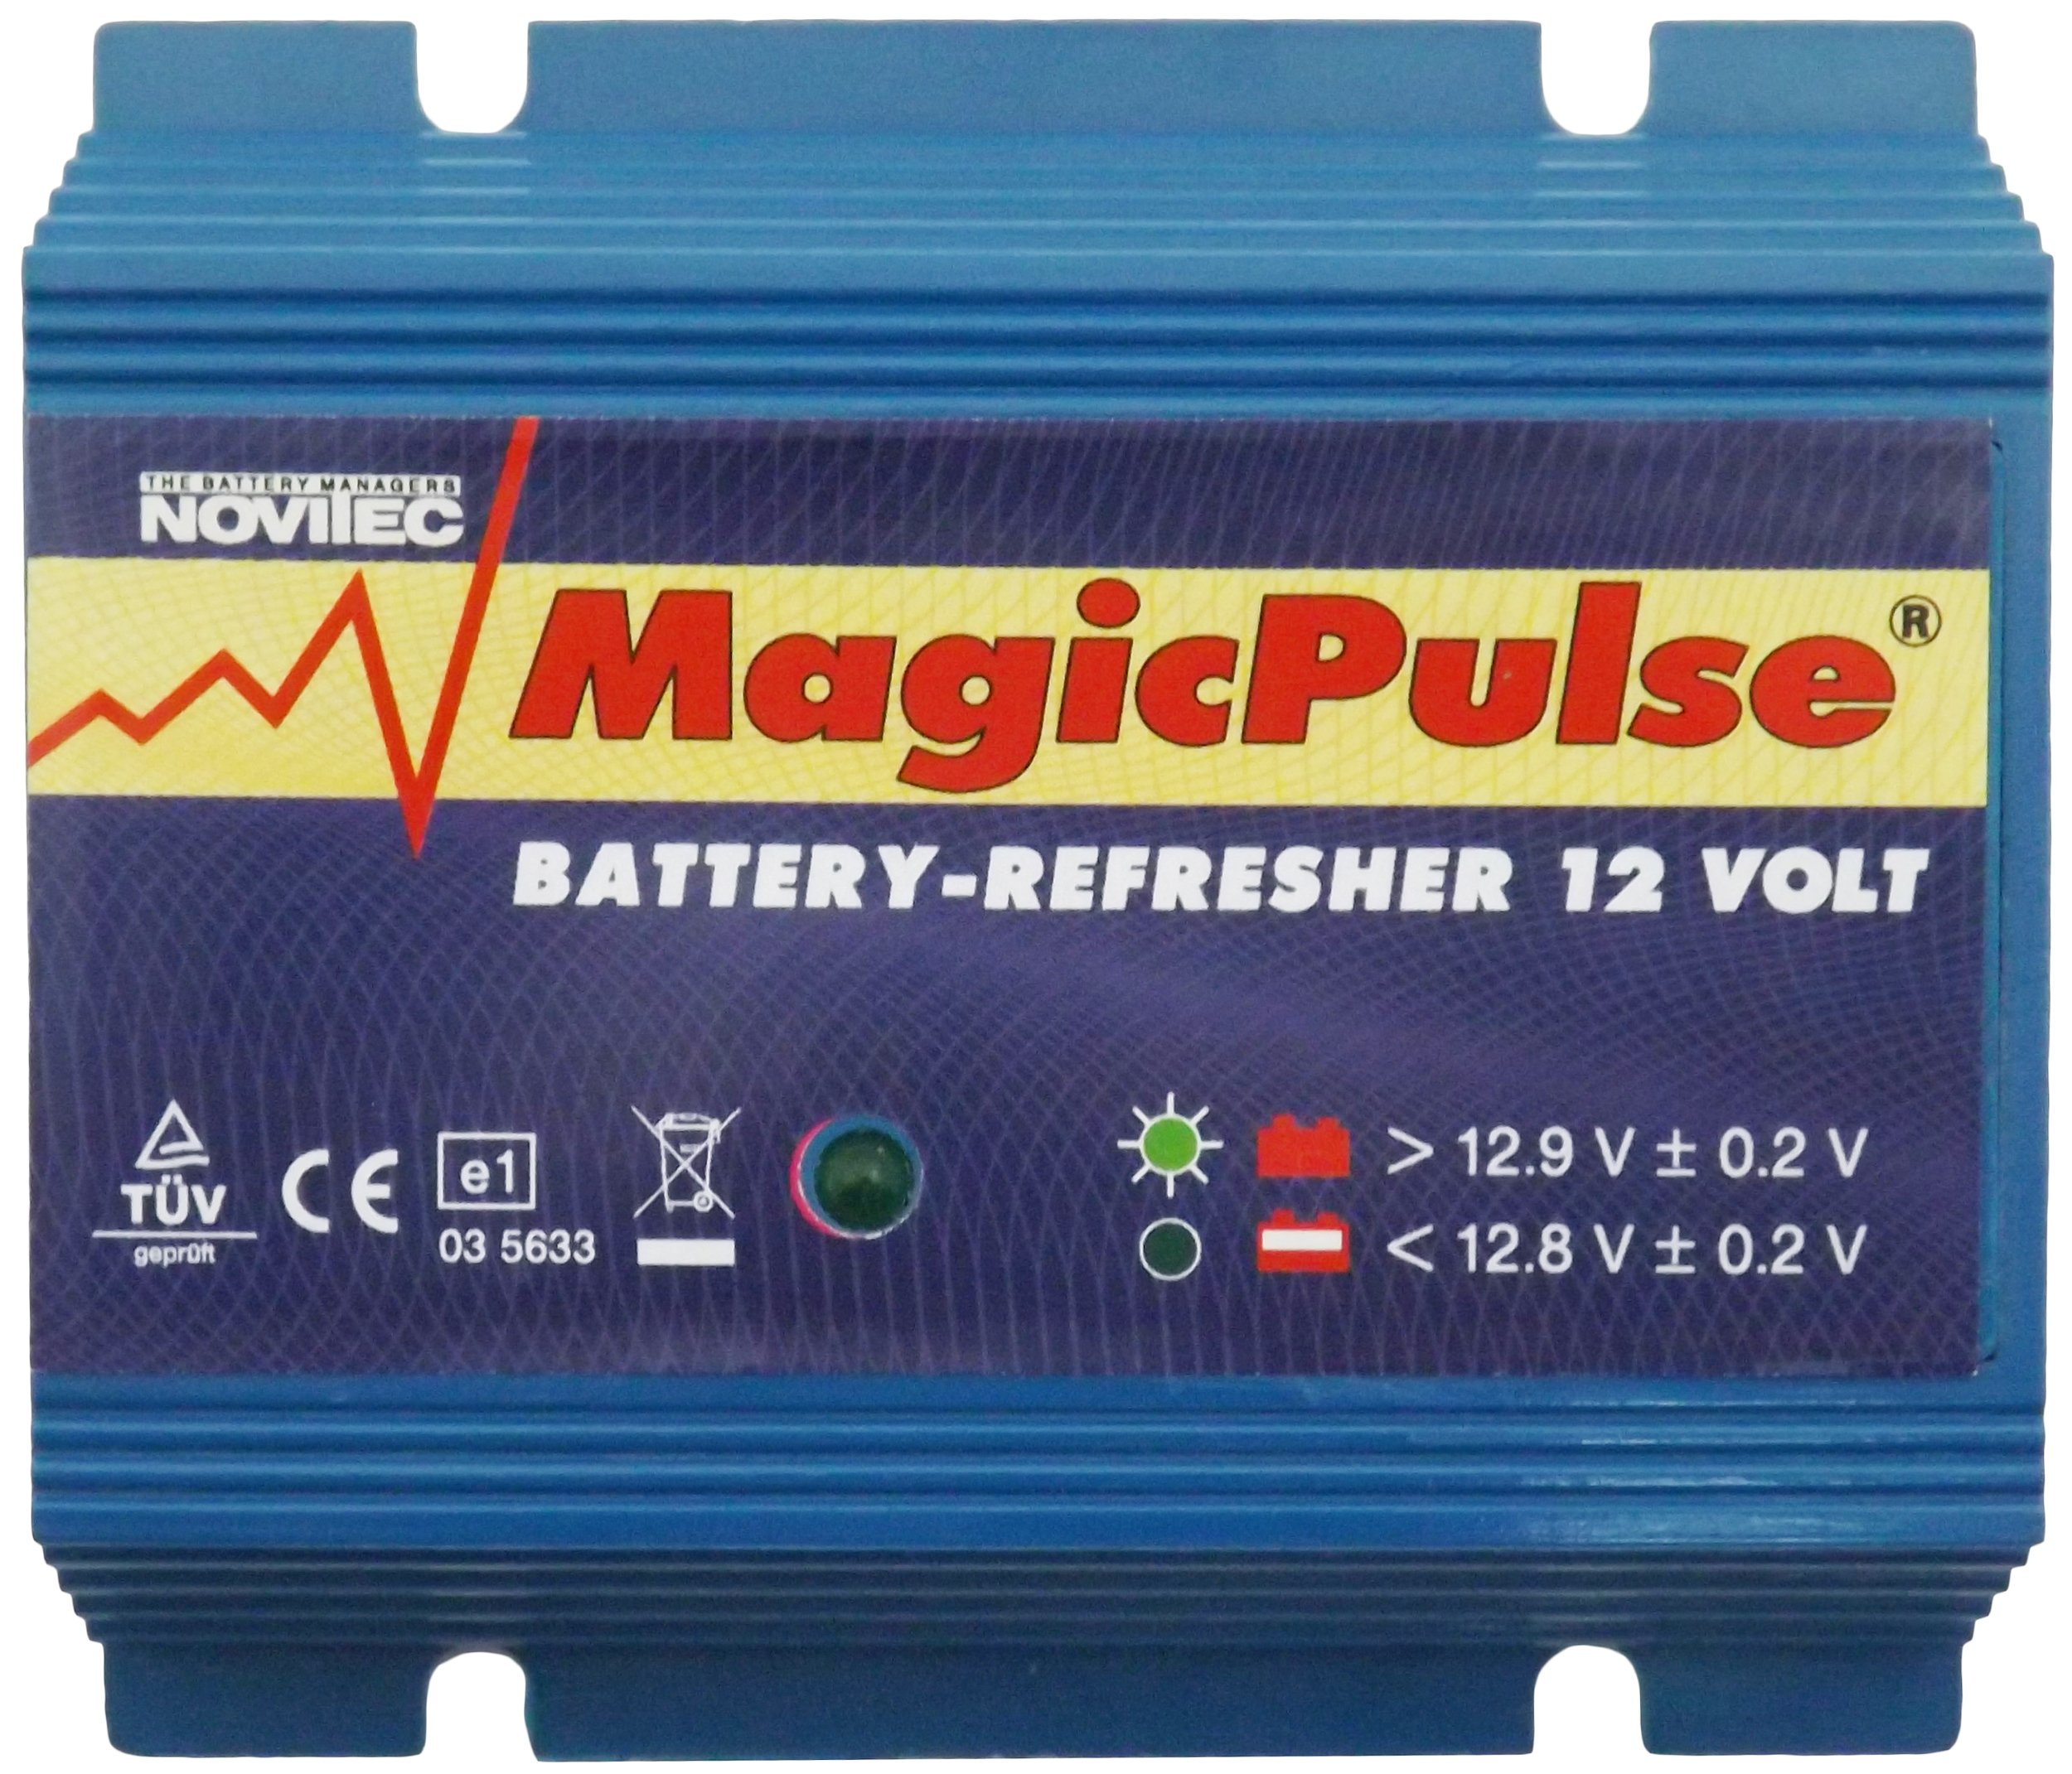 Magicpulse 12 Volt Battery Refresher, Extend the life of your battery by Magicpulse